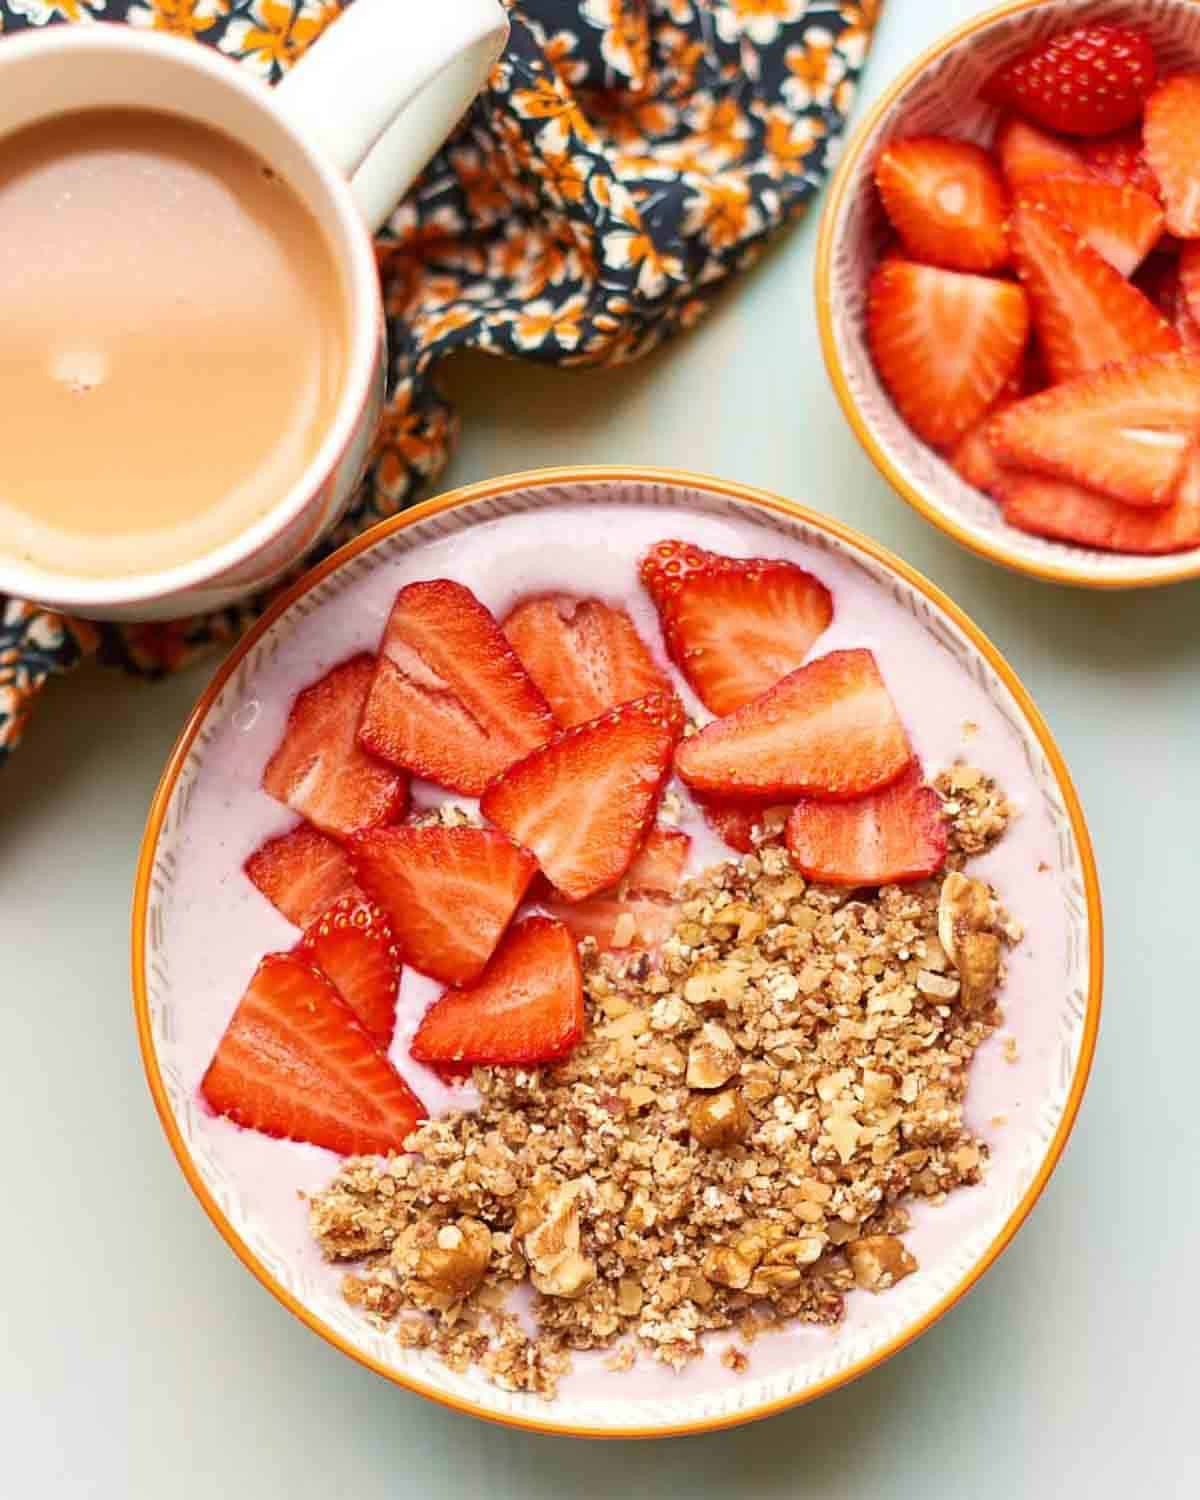 Strawberry breakfast bowl topped with strawberries and granola with tea and a bowl of strawberries beside.